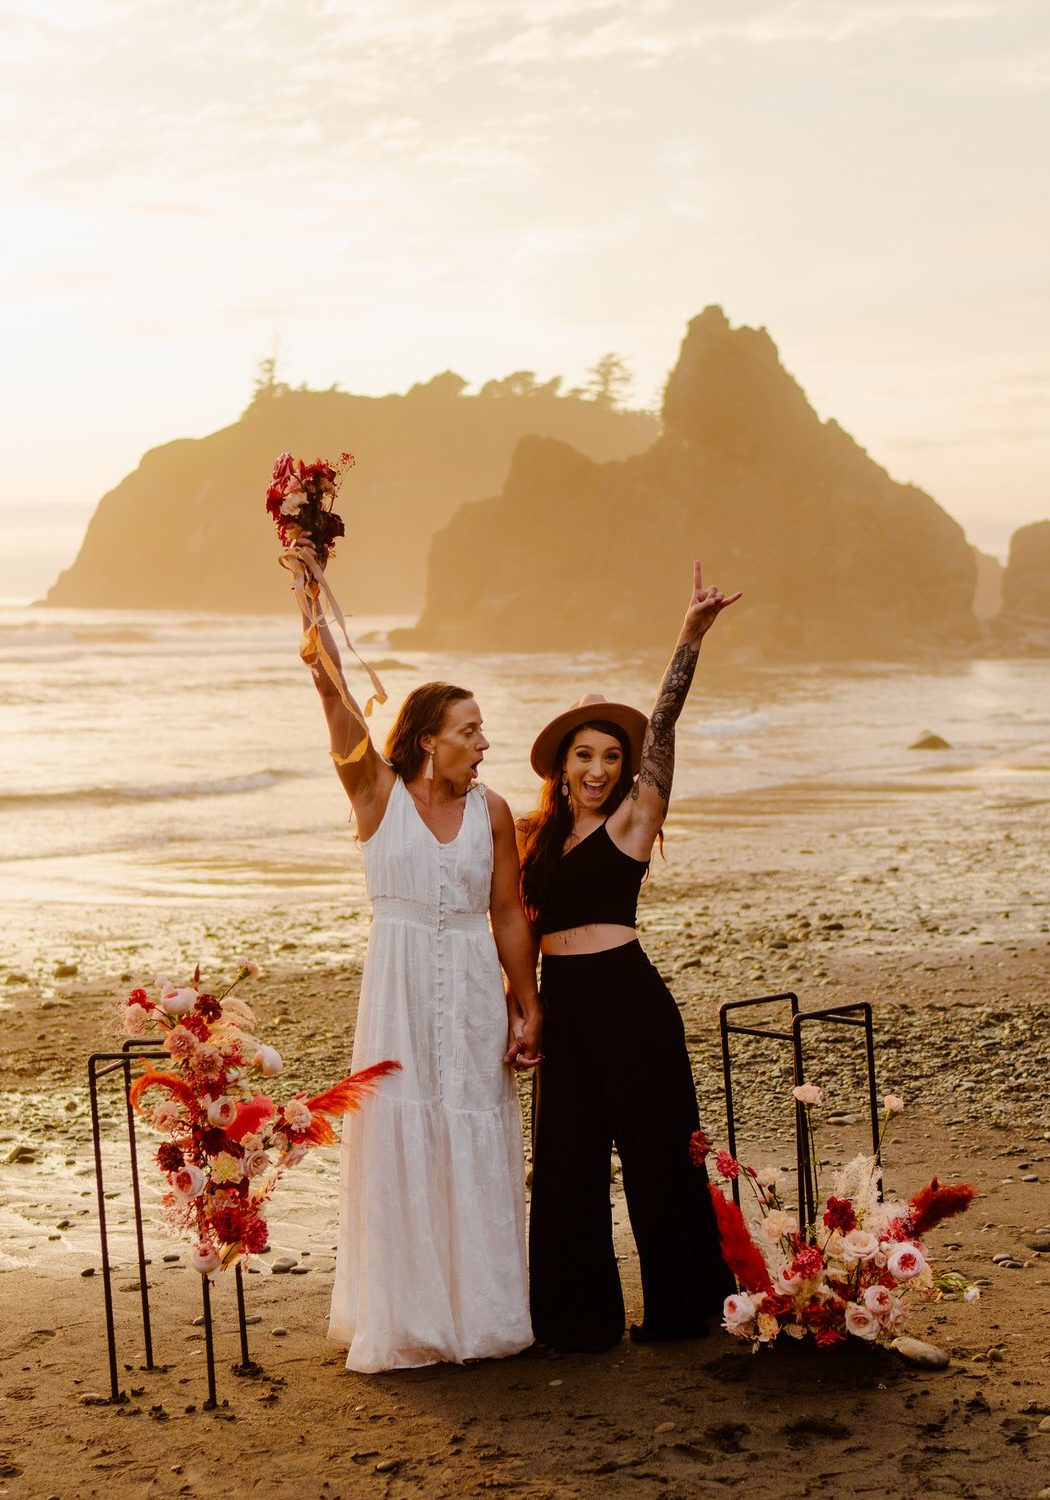 Olympic National Park Elopement Inspiration | Michaela and Adrianne